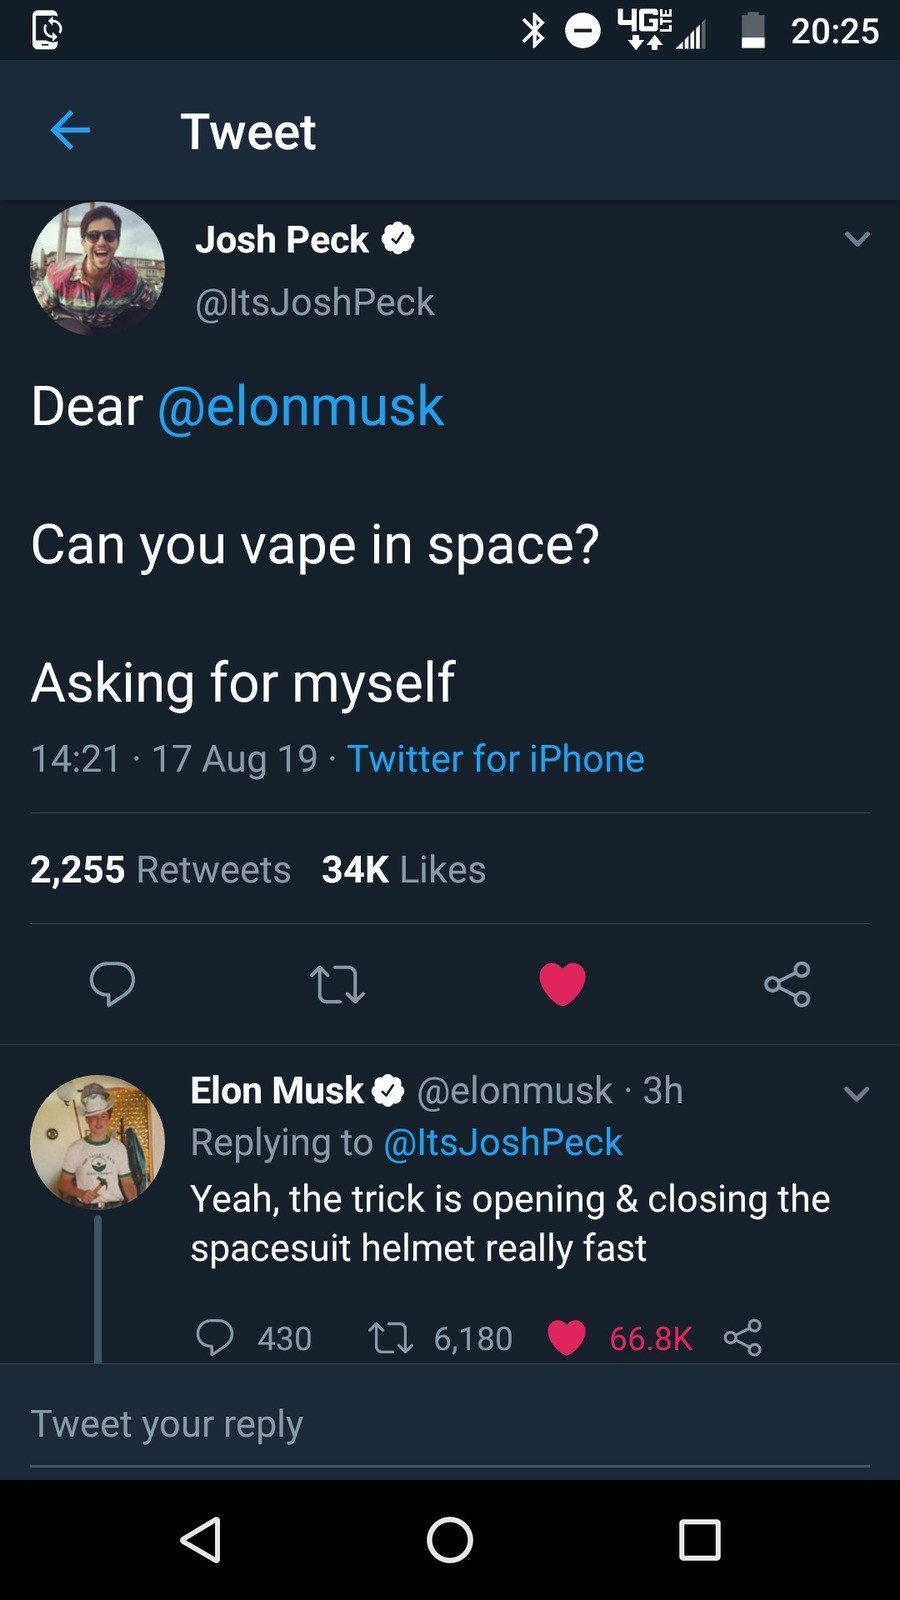 Jesus Christ. .. if I ever earn enough to make a difference on this planet, I hope I am 1/8 as cool as Elon